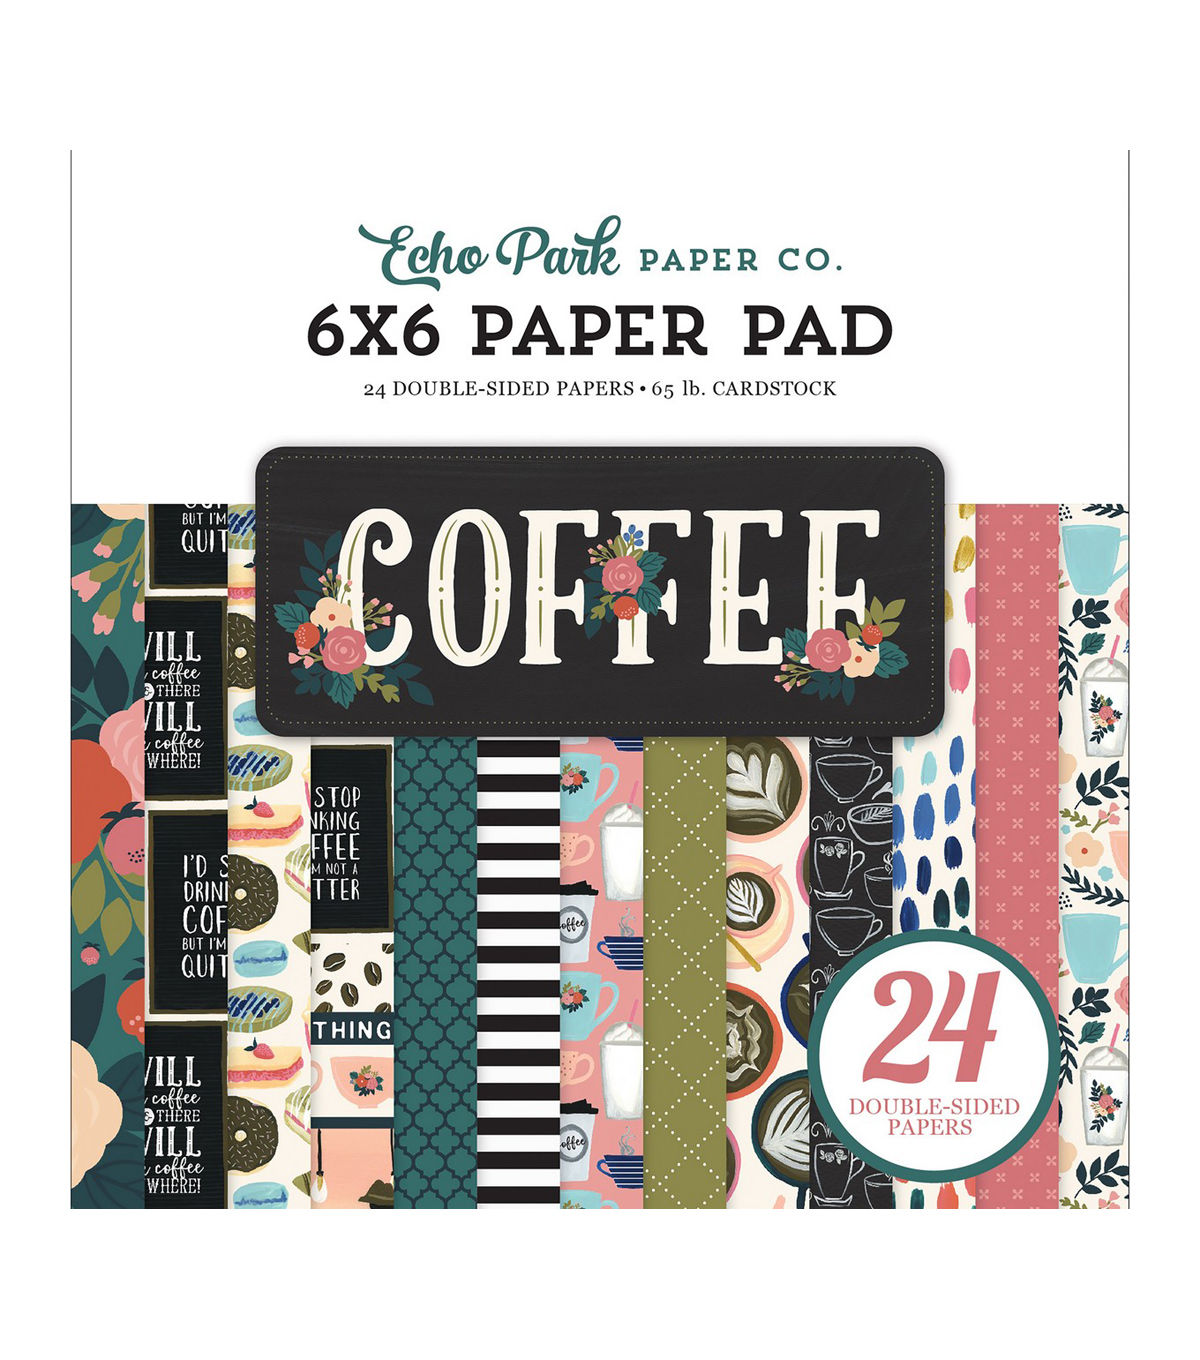 ECHO PARK PAPER COMPANY PAPER 6X6 PAD 12 Designs//2 Each I Love My Dog